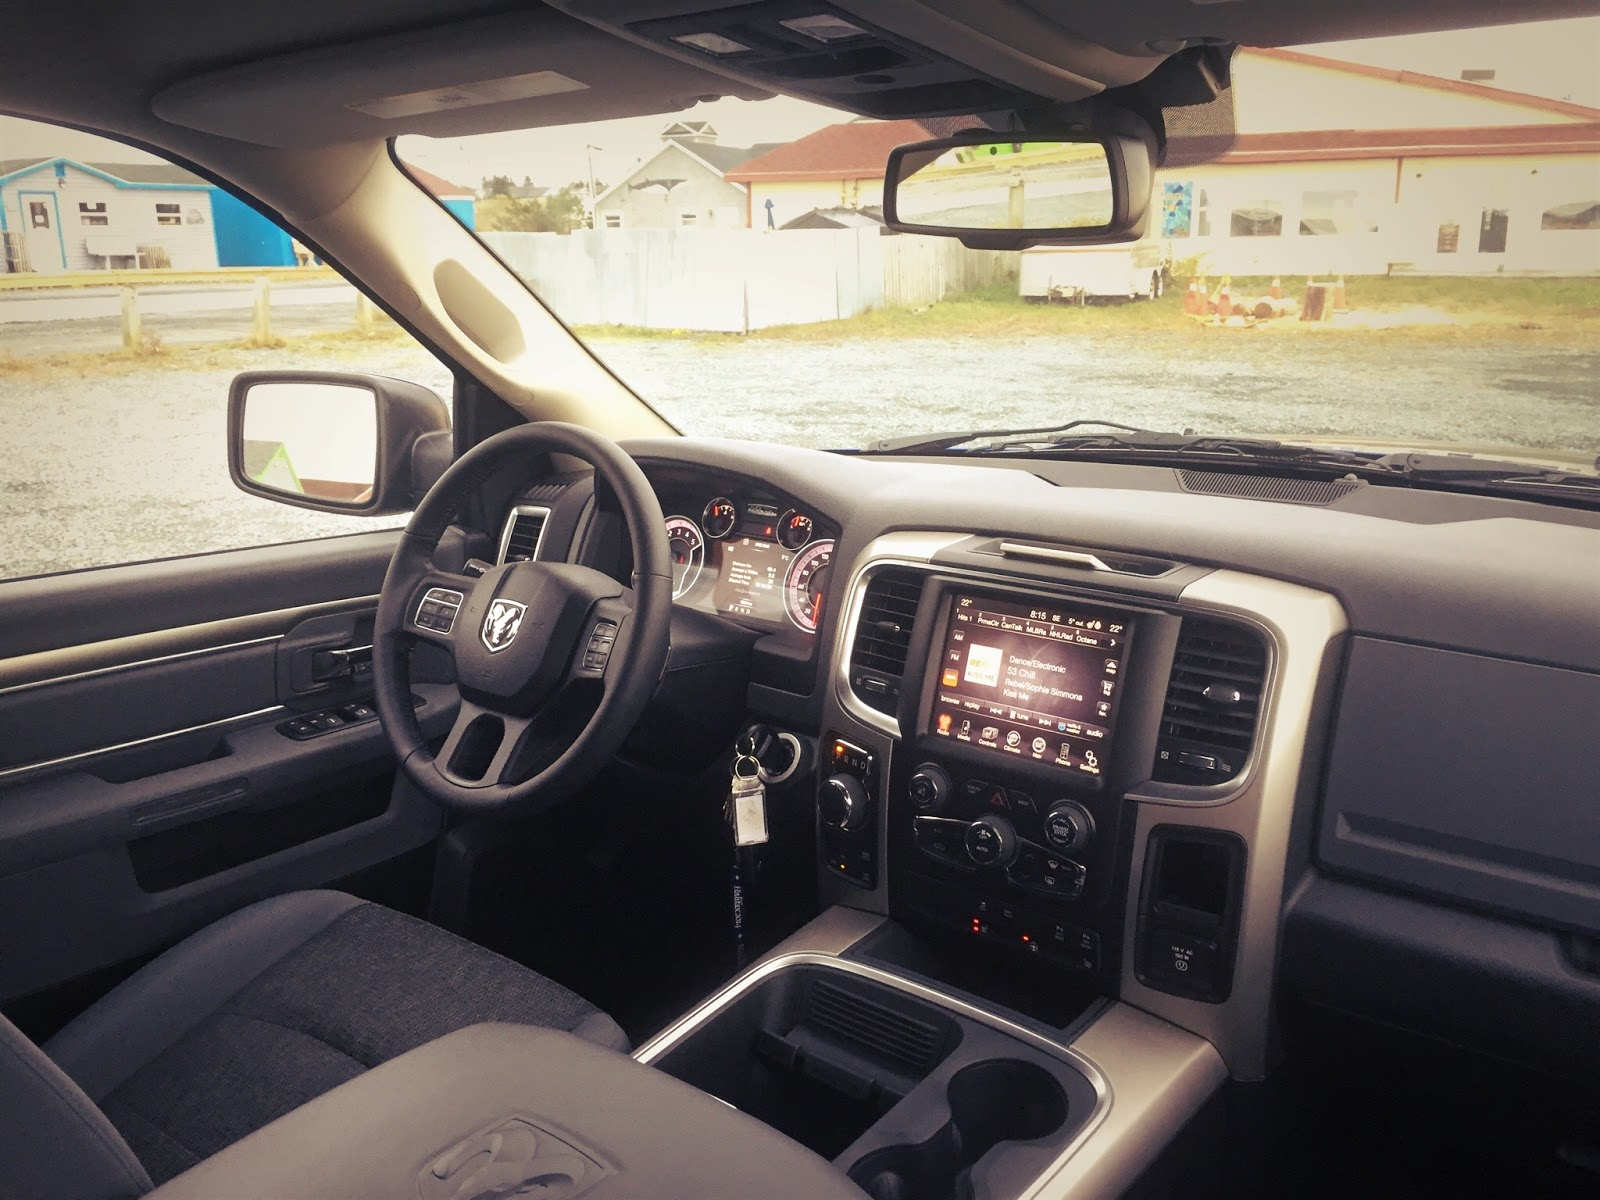 2015 Ram 1500 Outdoorsman Interior